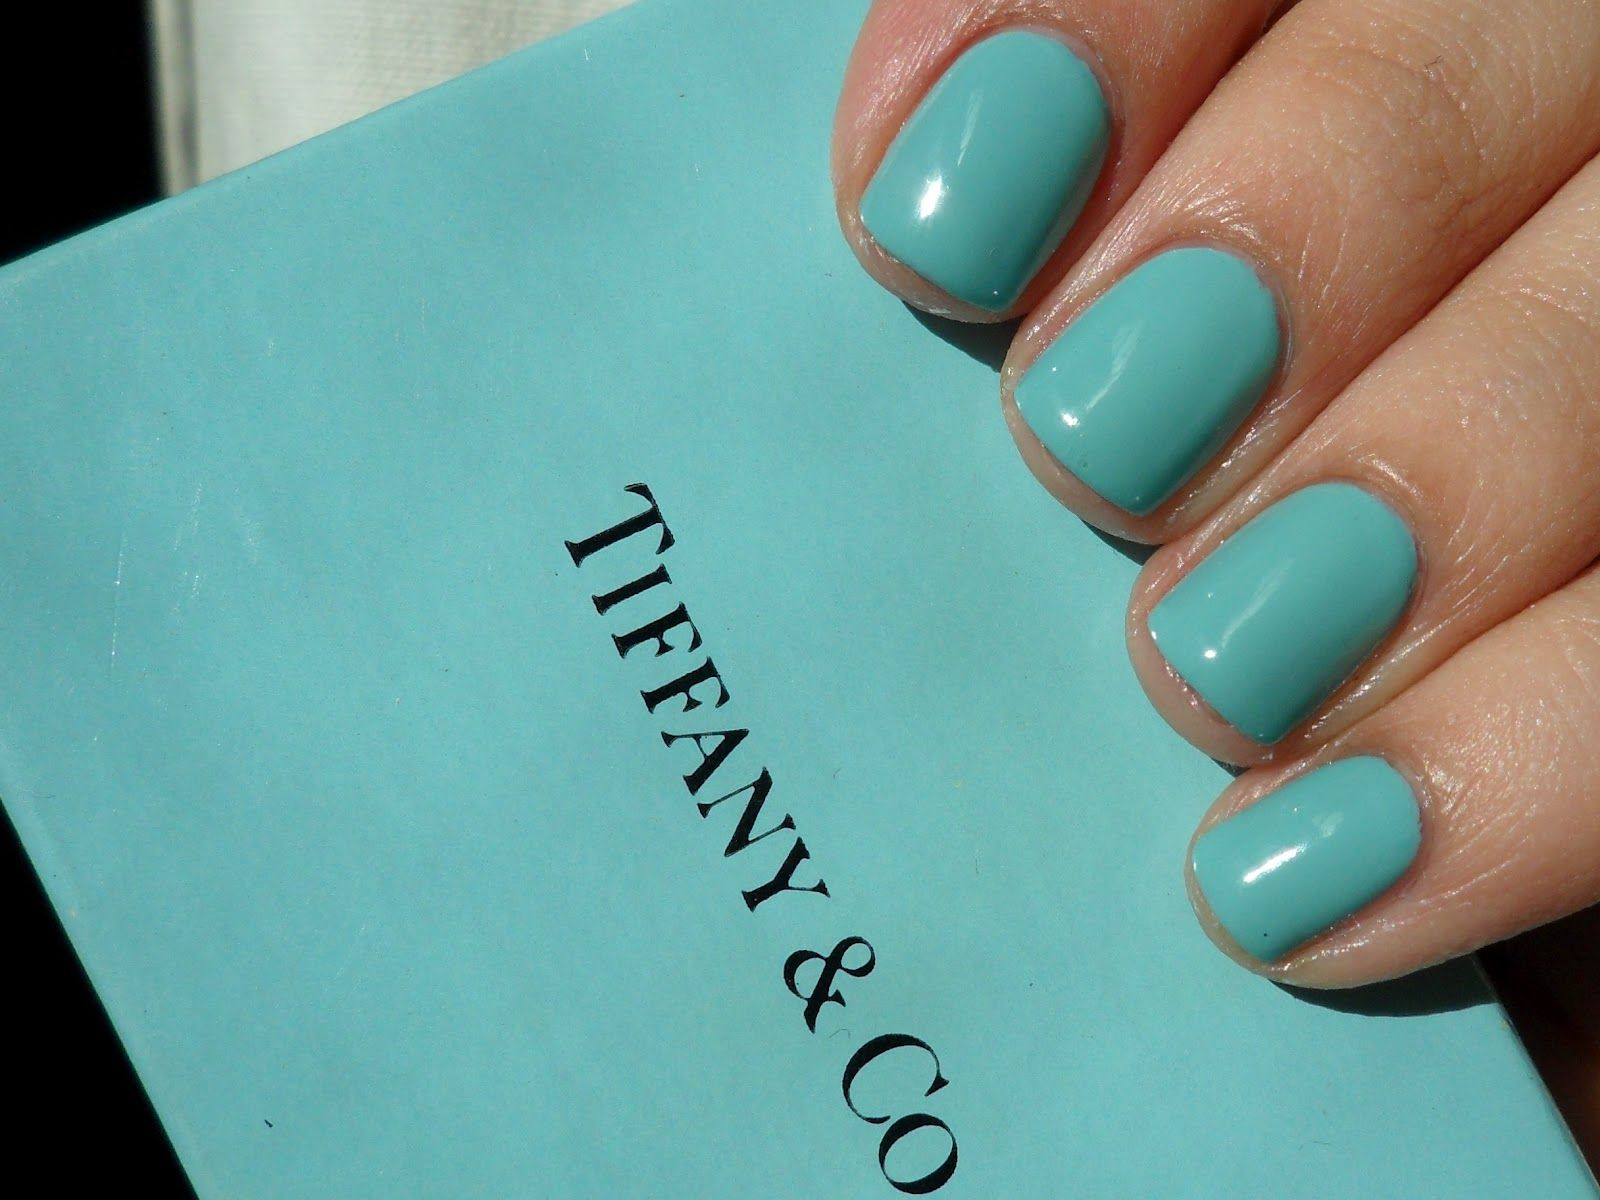 Tiffany Blue Is The Colloquial Name For Light Medium Robin Egg Color Ociated With Co New York City Jewelry Company